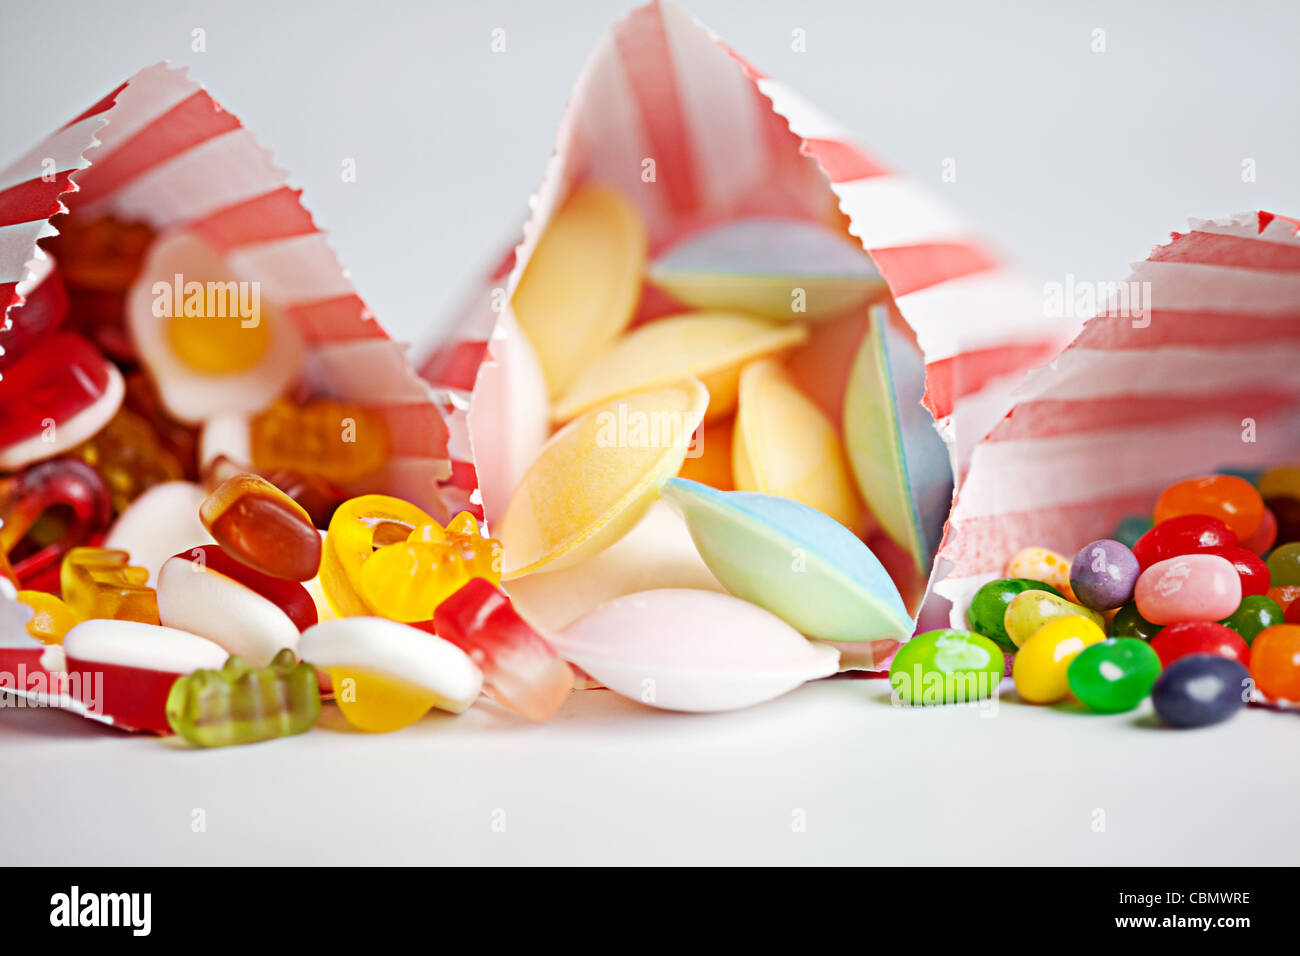 Three red and white striped sweetie bags, each overfloweing with colourful sweets - Stock Image